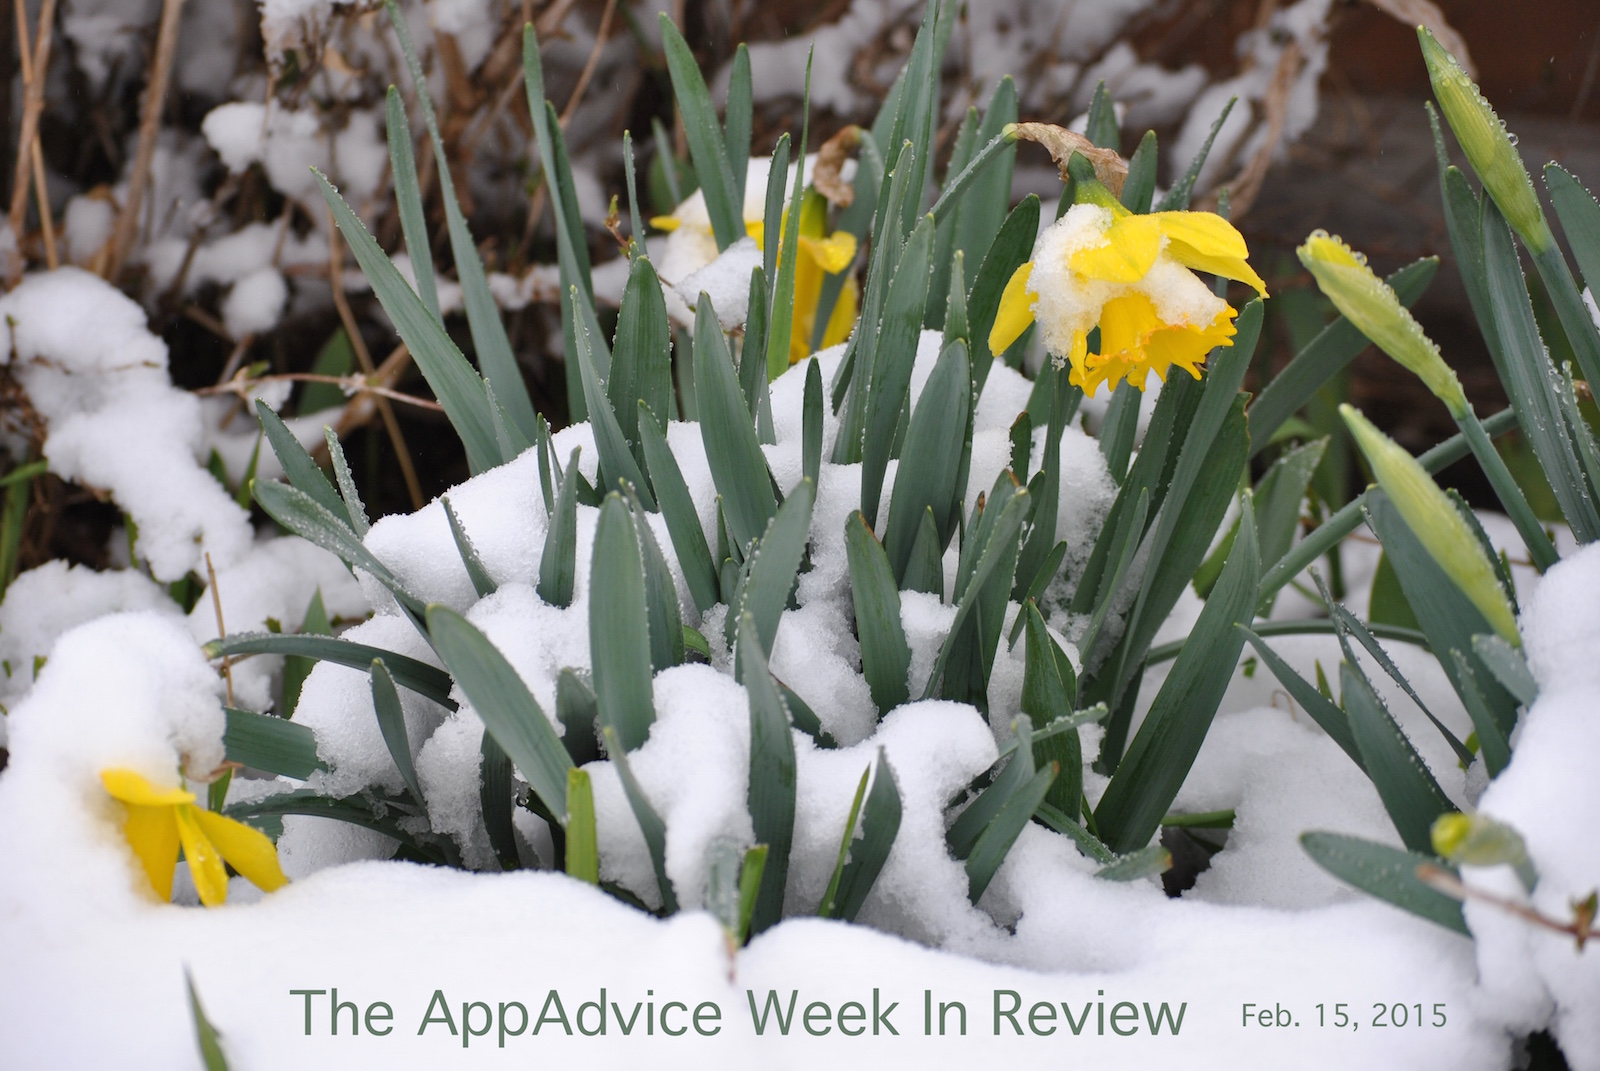 The AppAdvice week in review: Apple's springtime goodies get ready to bloom